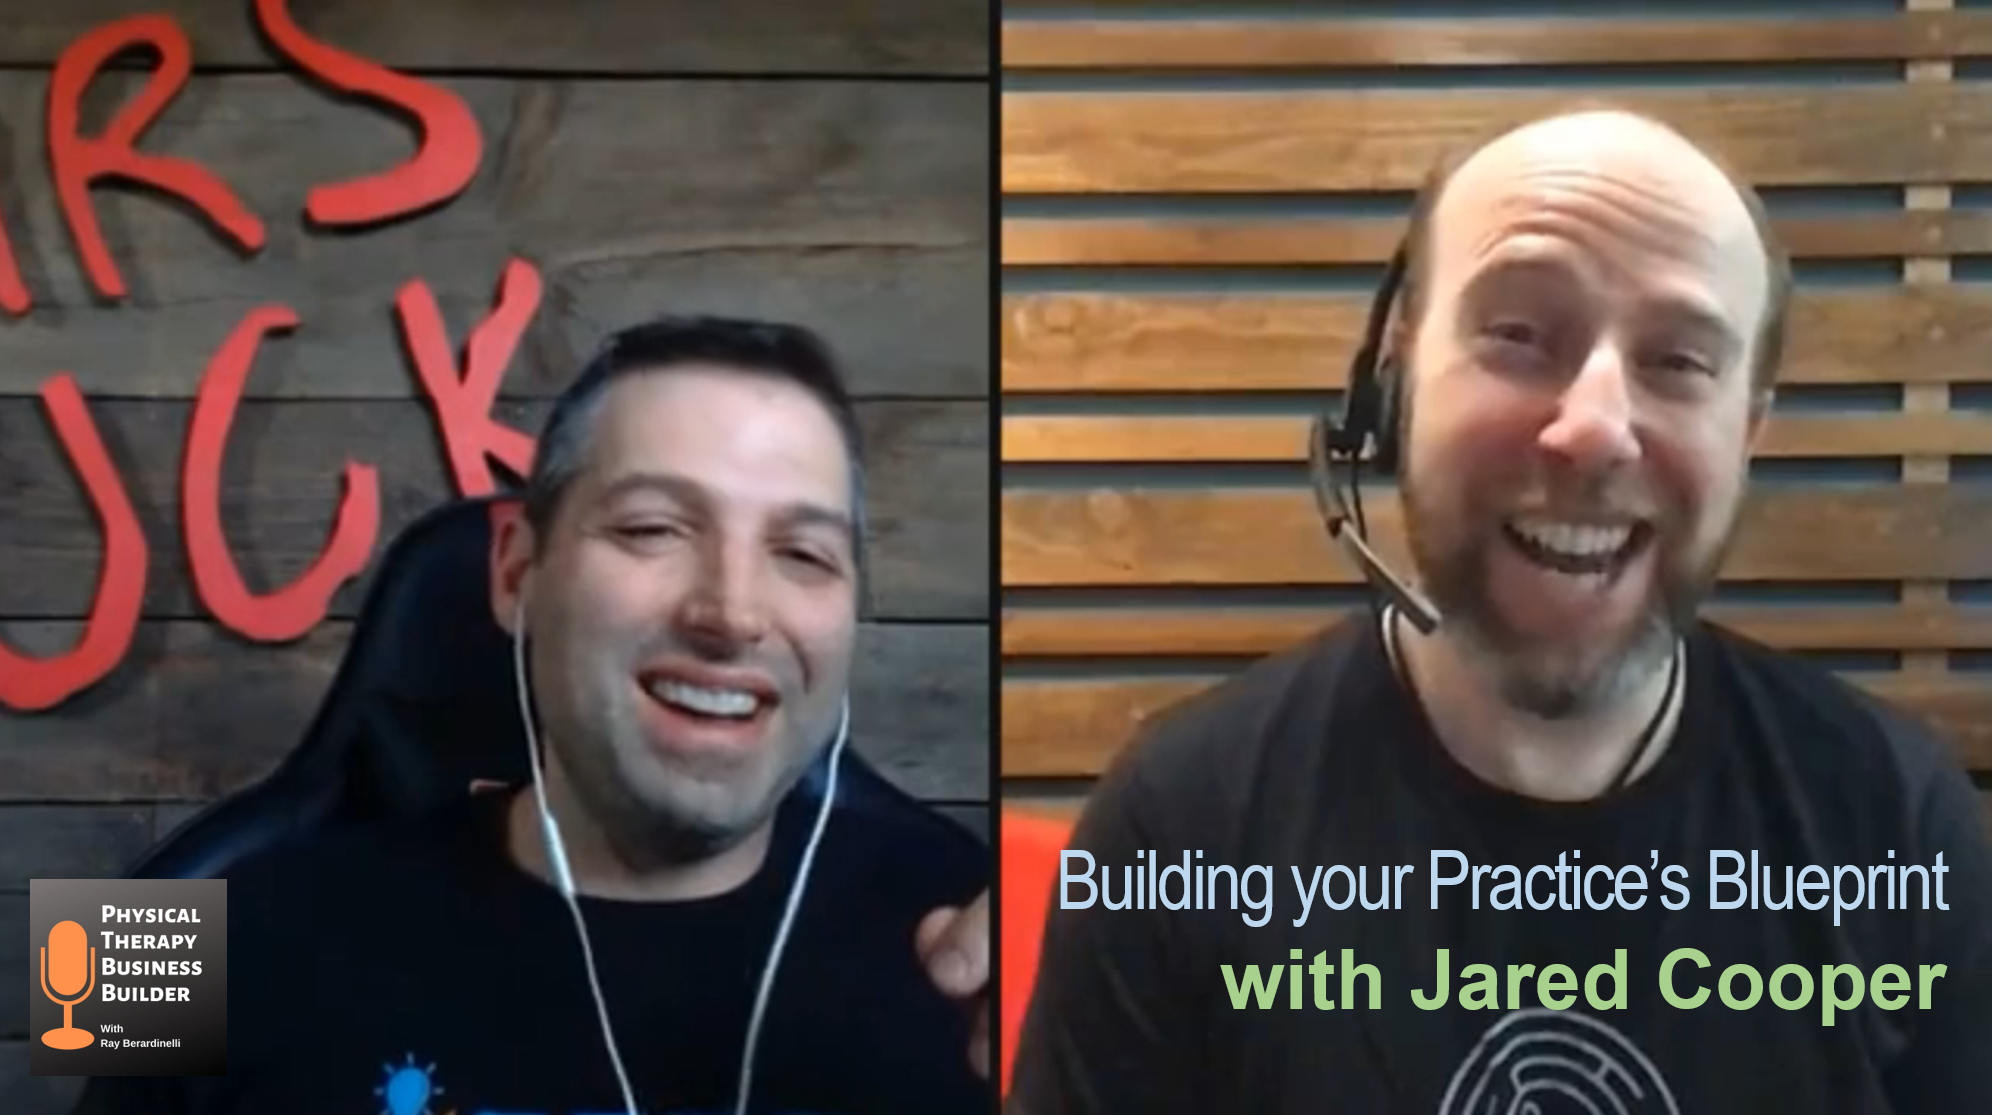 Building your Practice's Blueprint with Jared Cooper